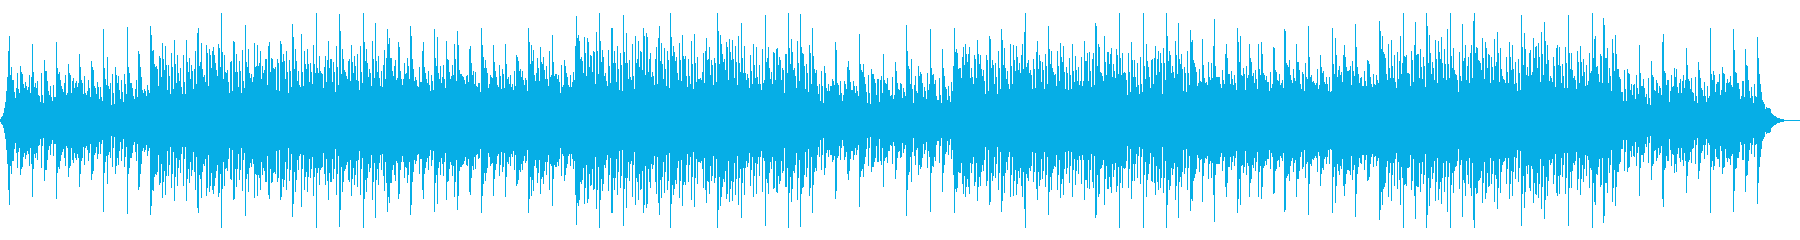 Corporate VP Refreshing acoustic guitar music's reproduced waveform